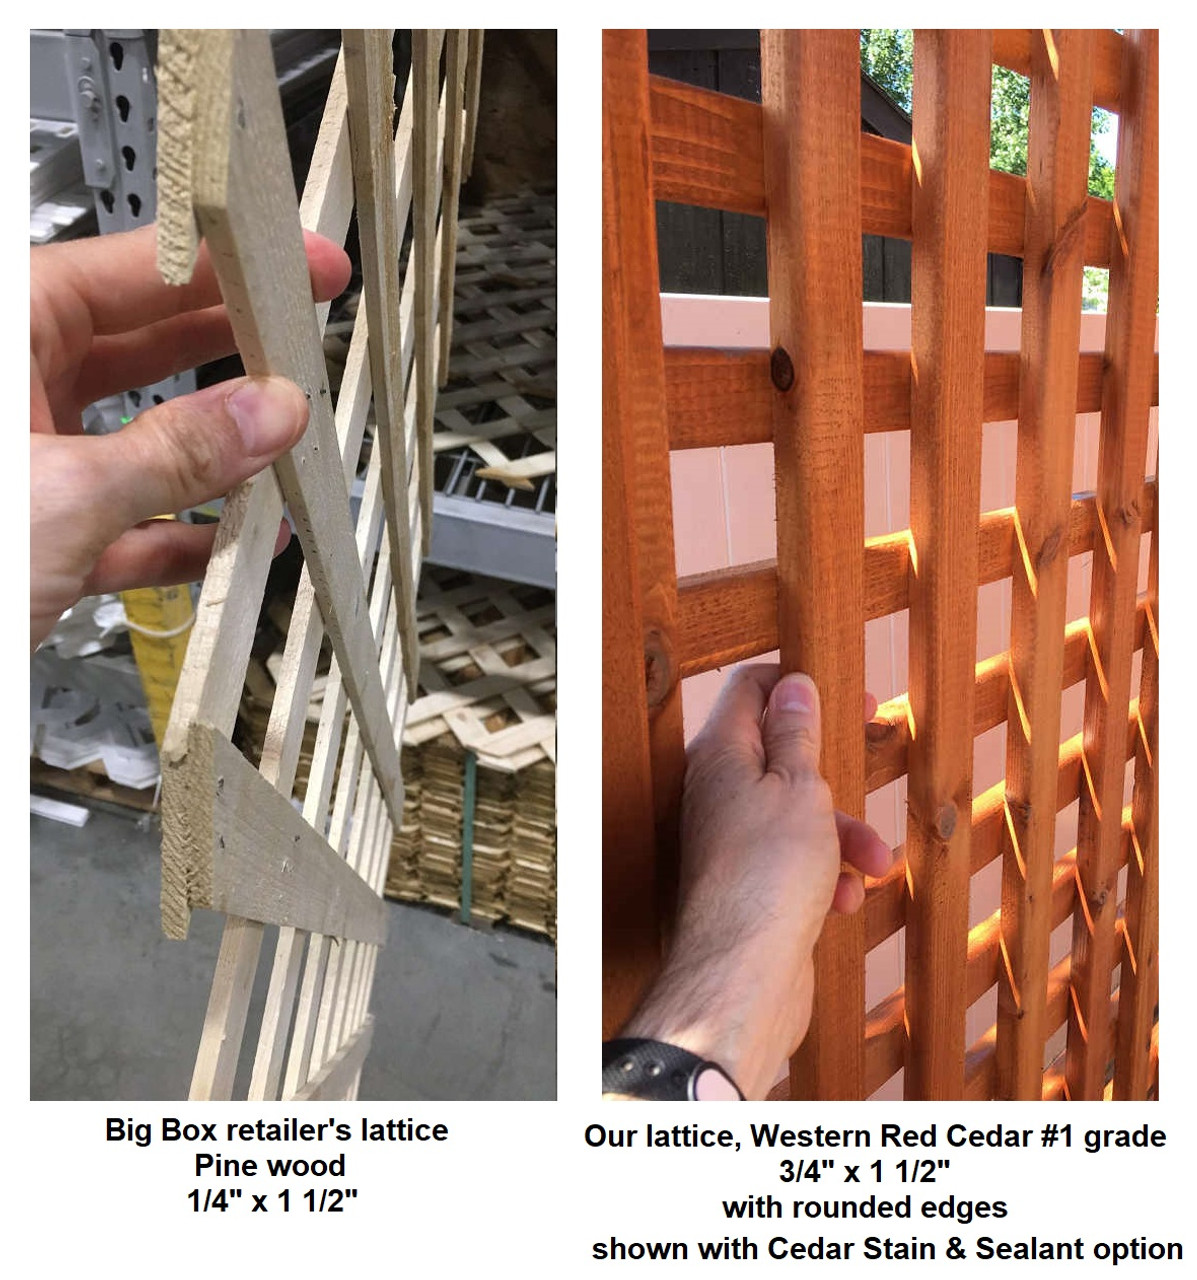 Our lattice versus store bought lattice